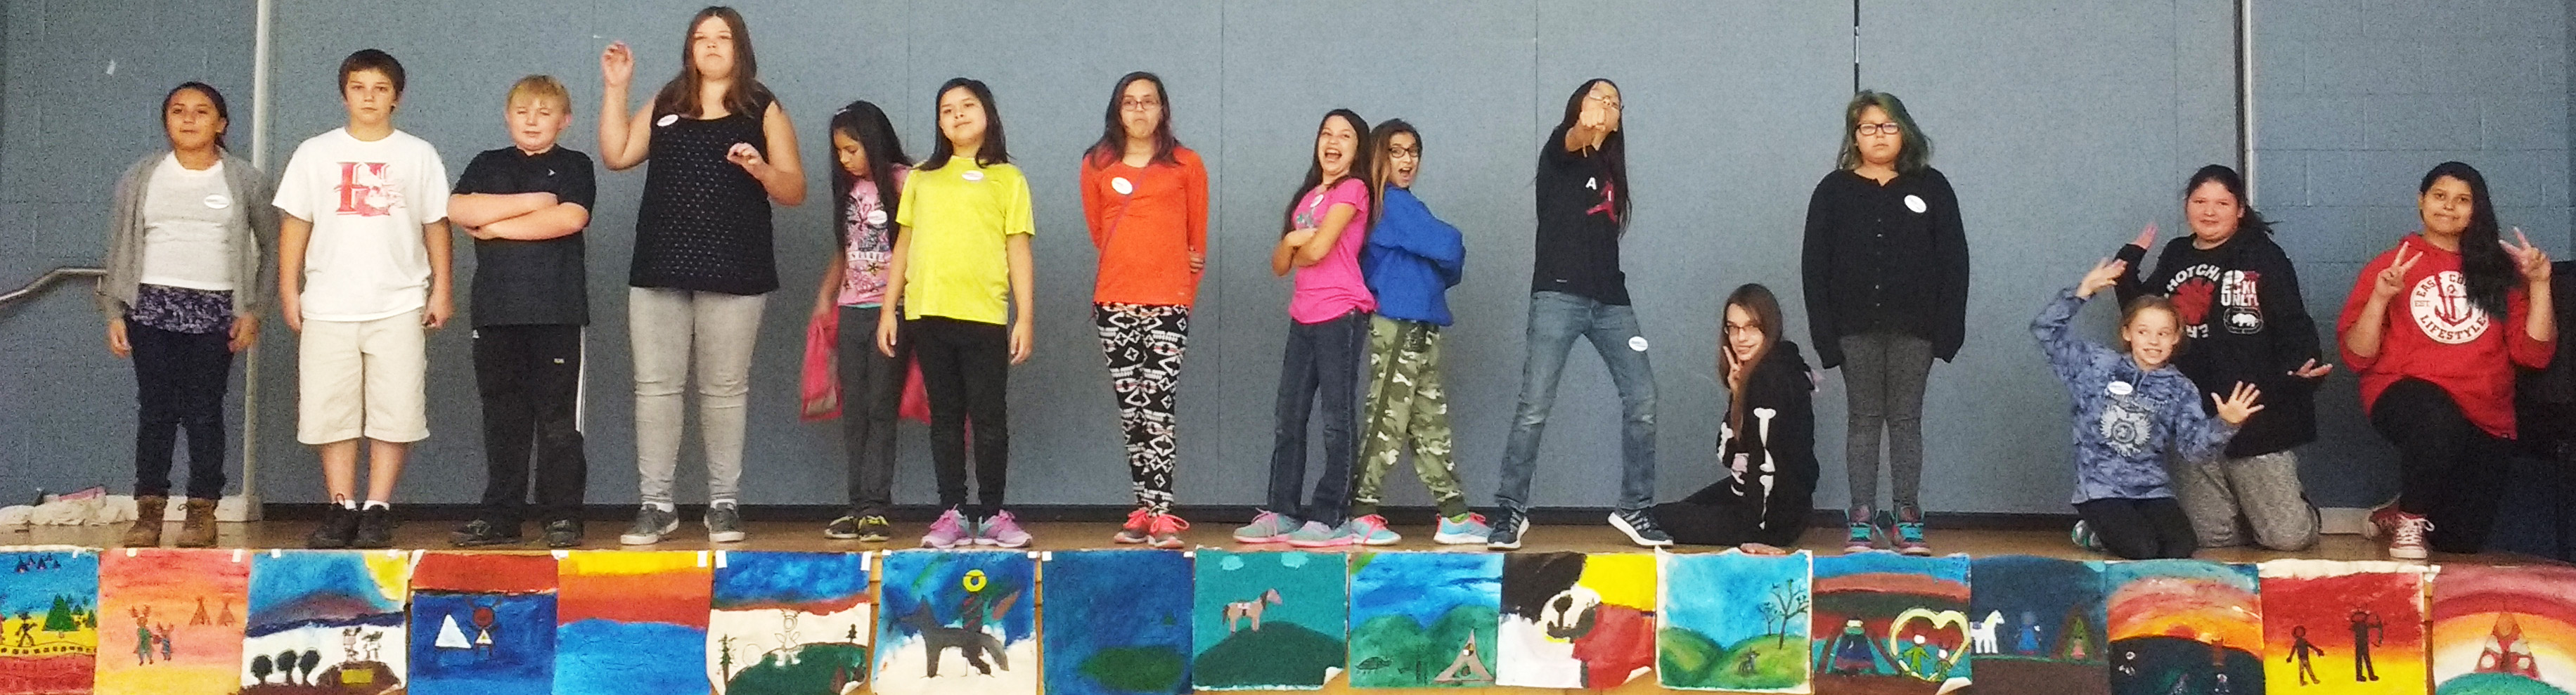 The grade sixes at Riverside EC proudly showcase their paintings. Photo by Trish Gibbon.